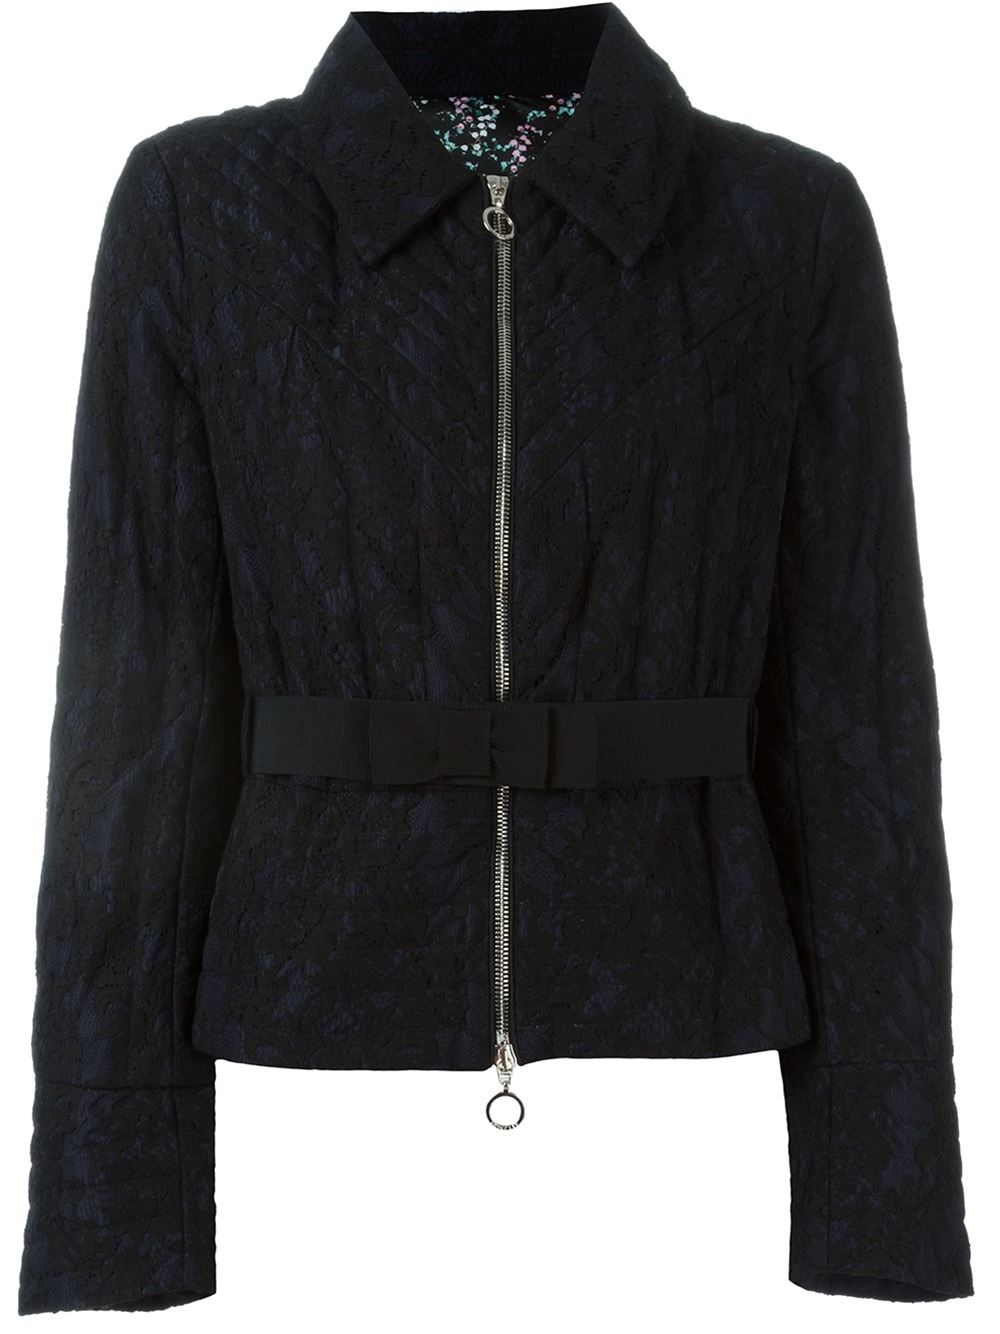 Moncler Floral Lace Puffer Jacket In Black Lyst